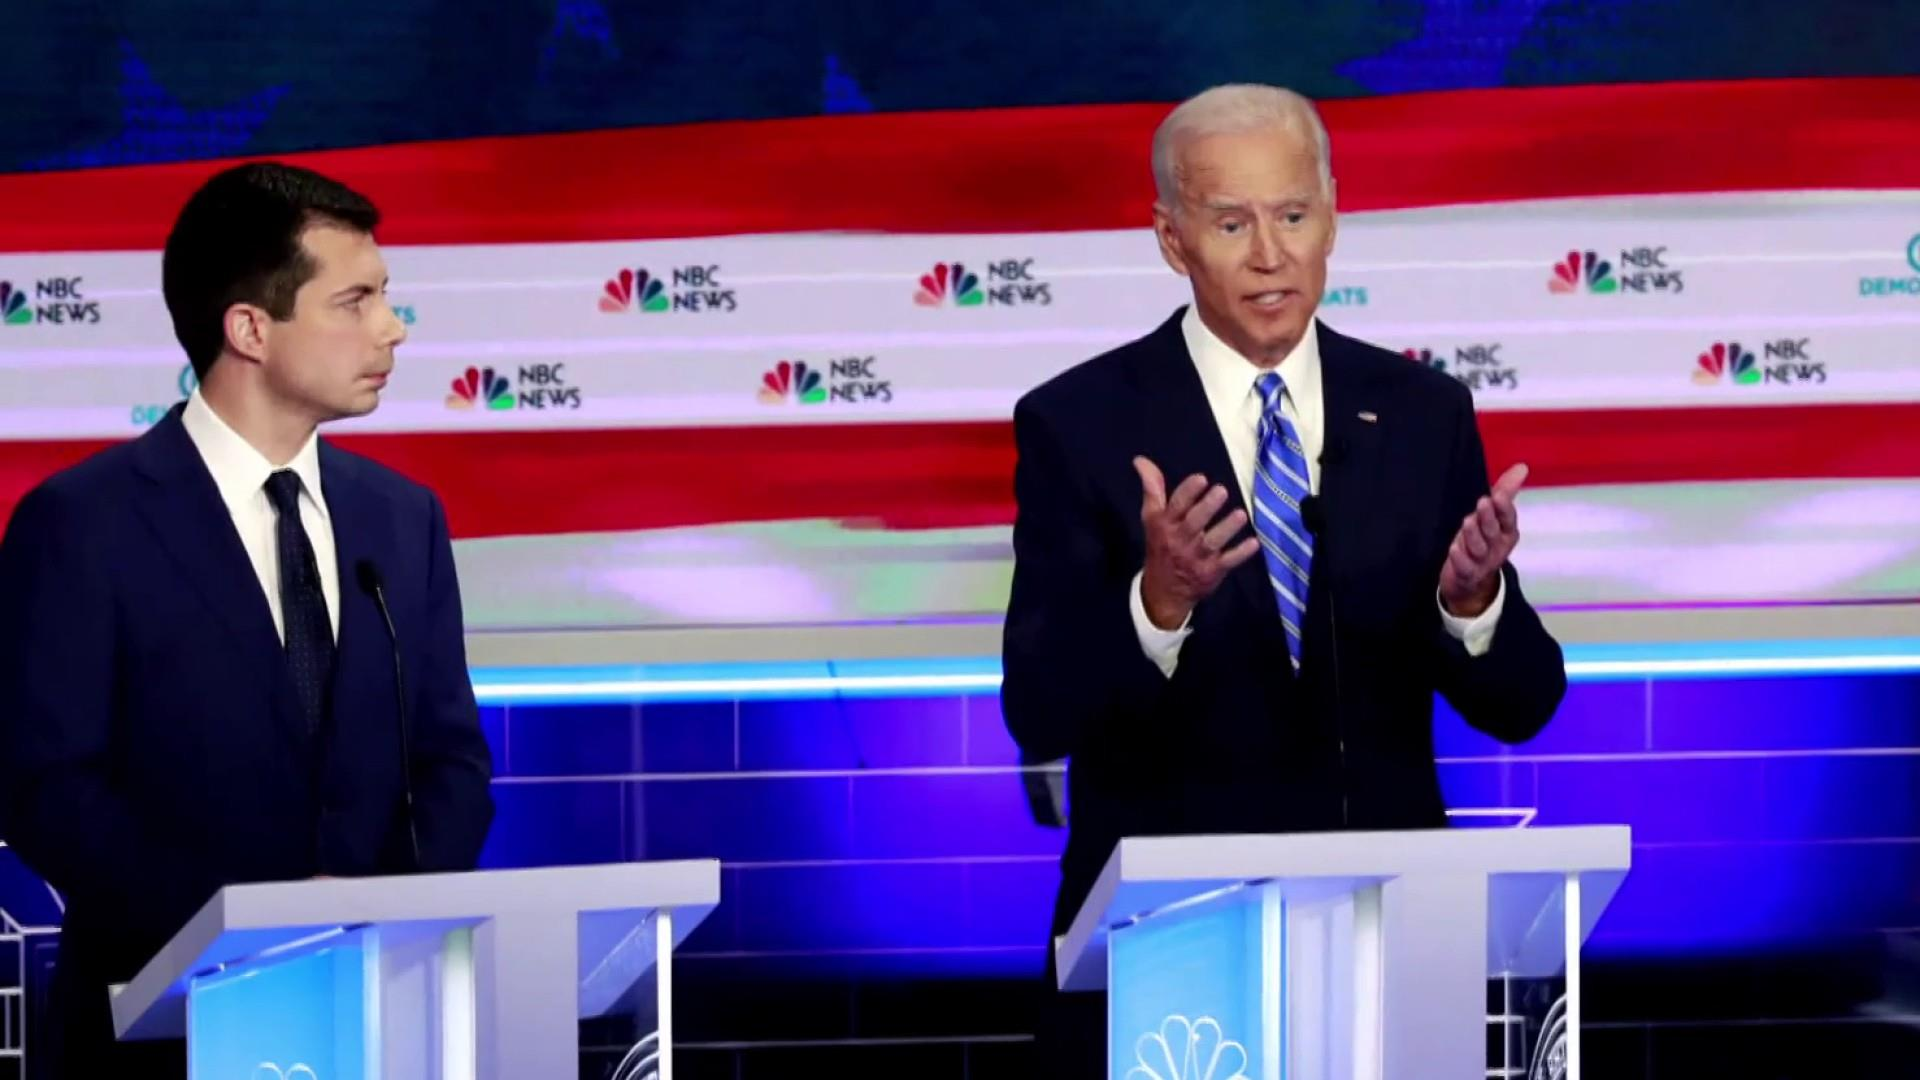 Biden looks to set civil rights record straight after being questioned in first debate